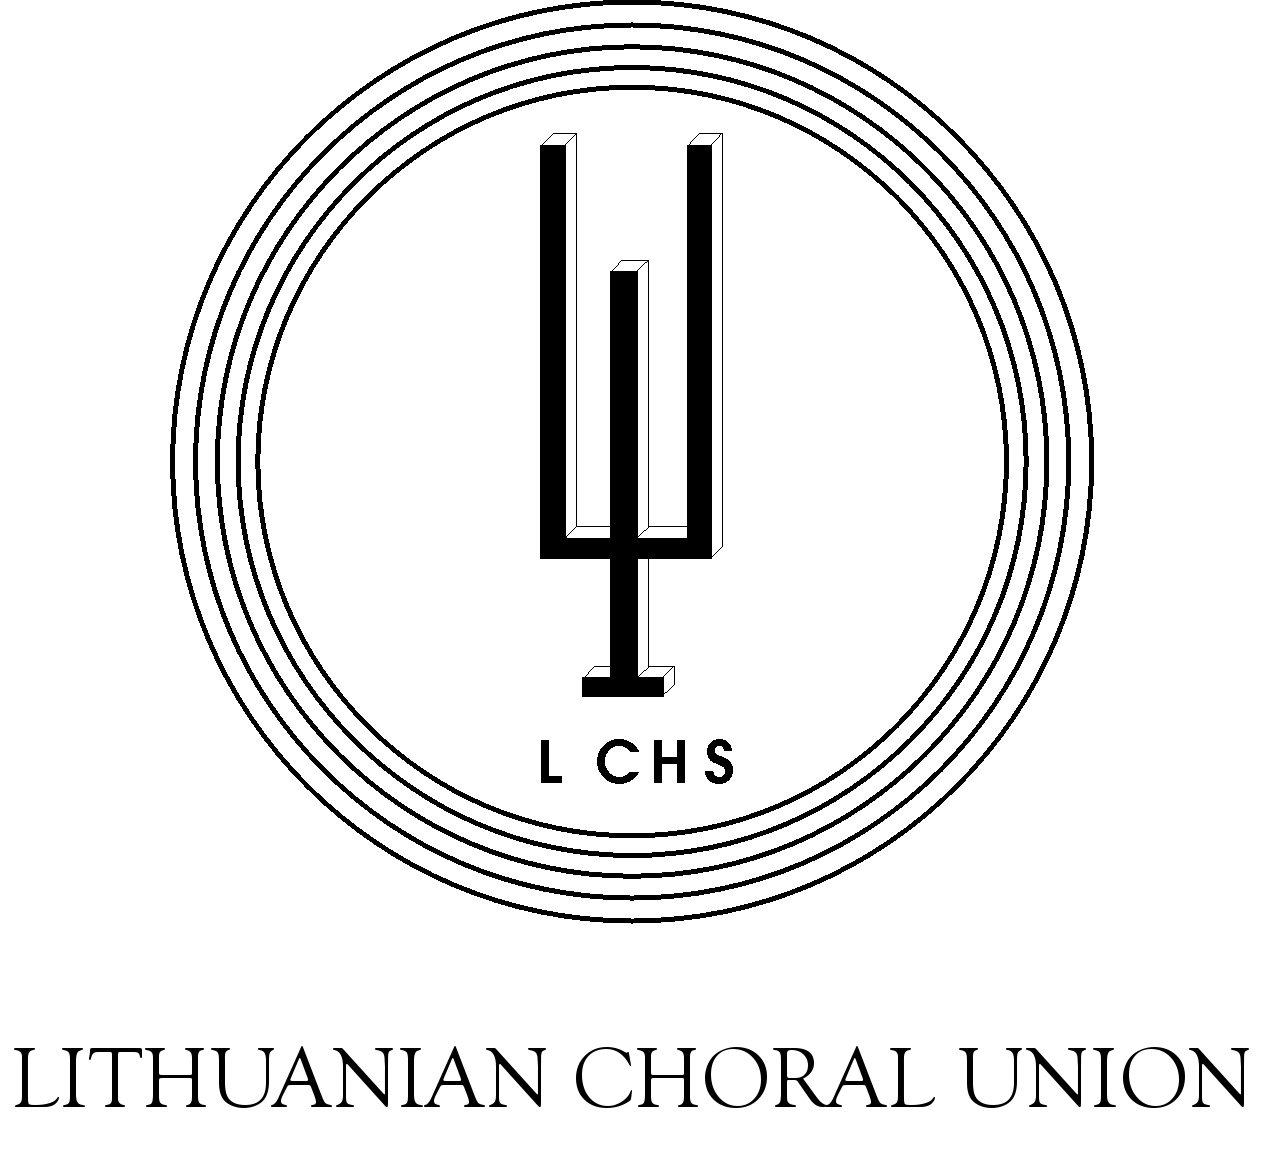 Lithuanian Choral Union